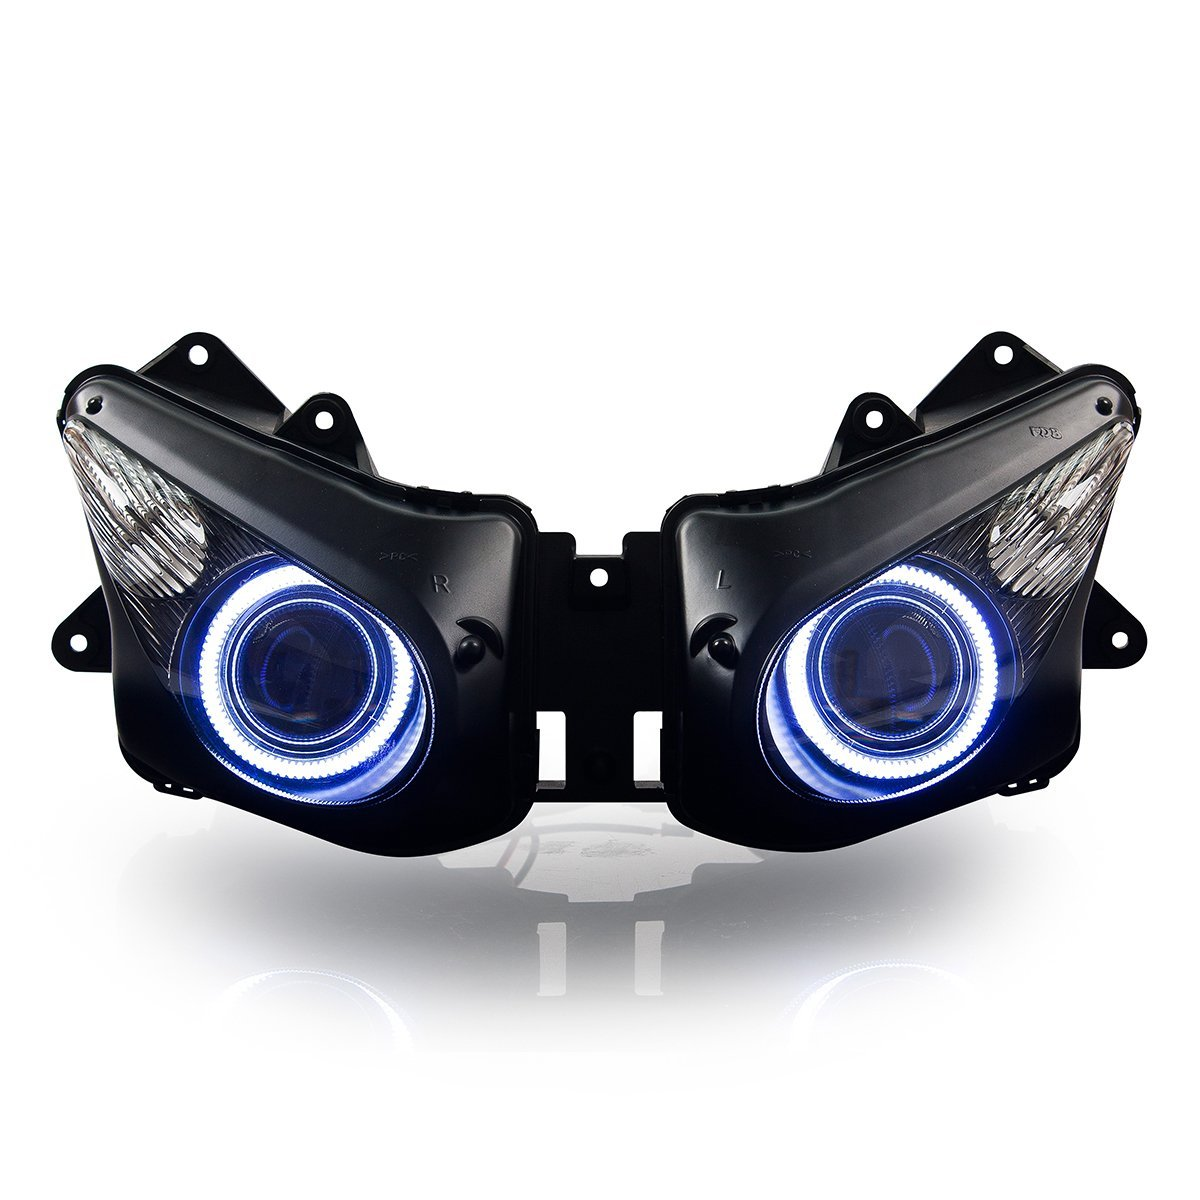 Amazon.com: KT Headlight Assembly for Kawasaki Ninja ZX-10R ...